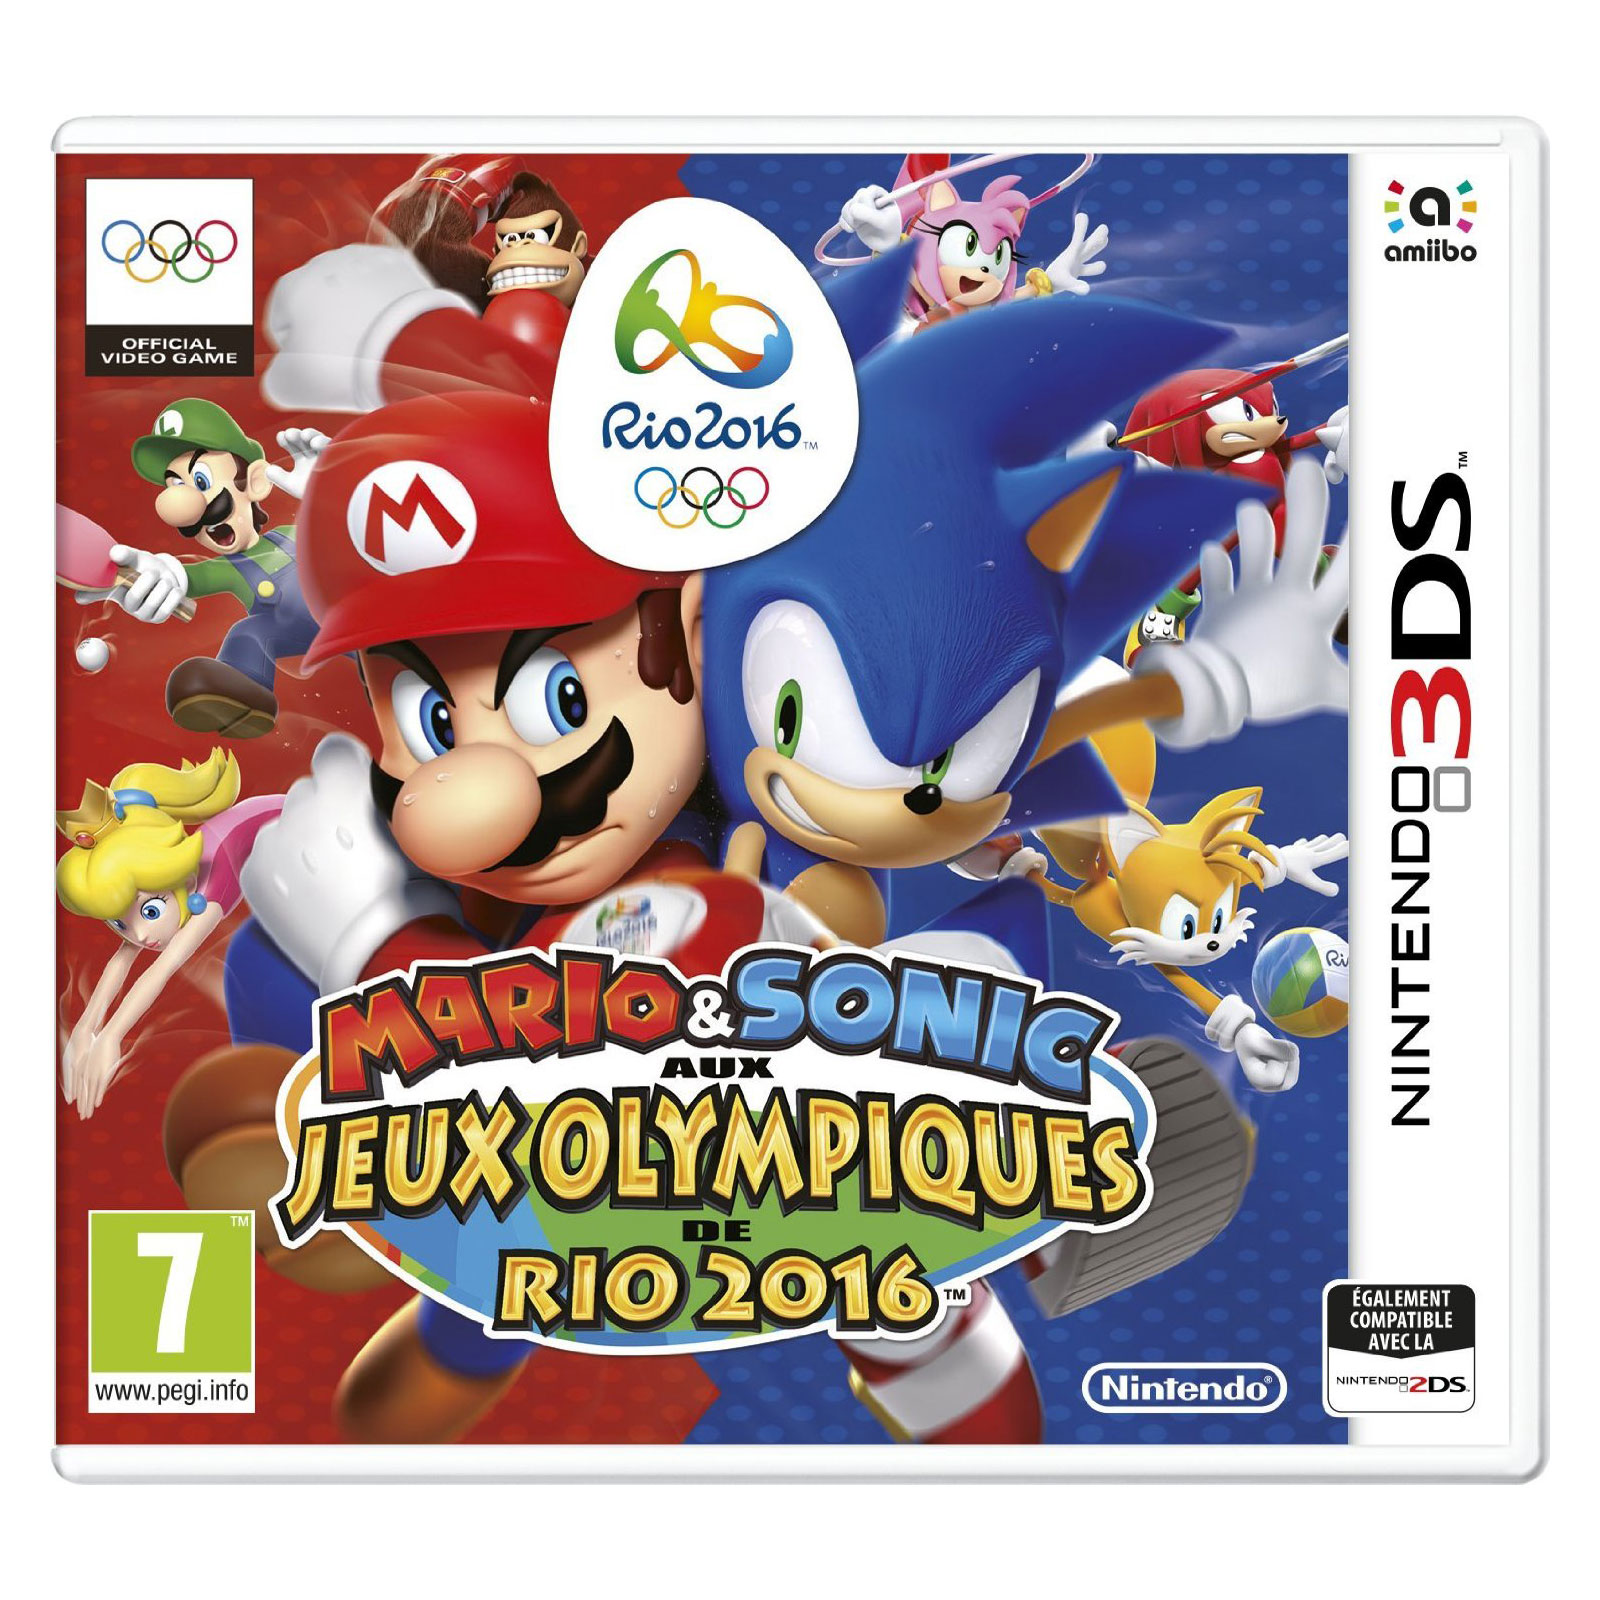 mario sonic aux jeux olympiques de rio 2016 nintendo 3ds 2ds jeux nintendo 3ds nintendo. Black Bedroom Furniture Sets. Home Design Ideas